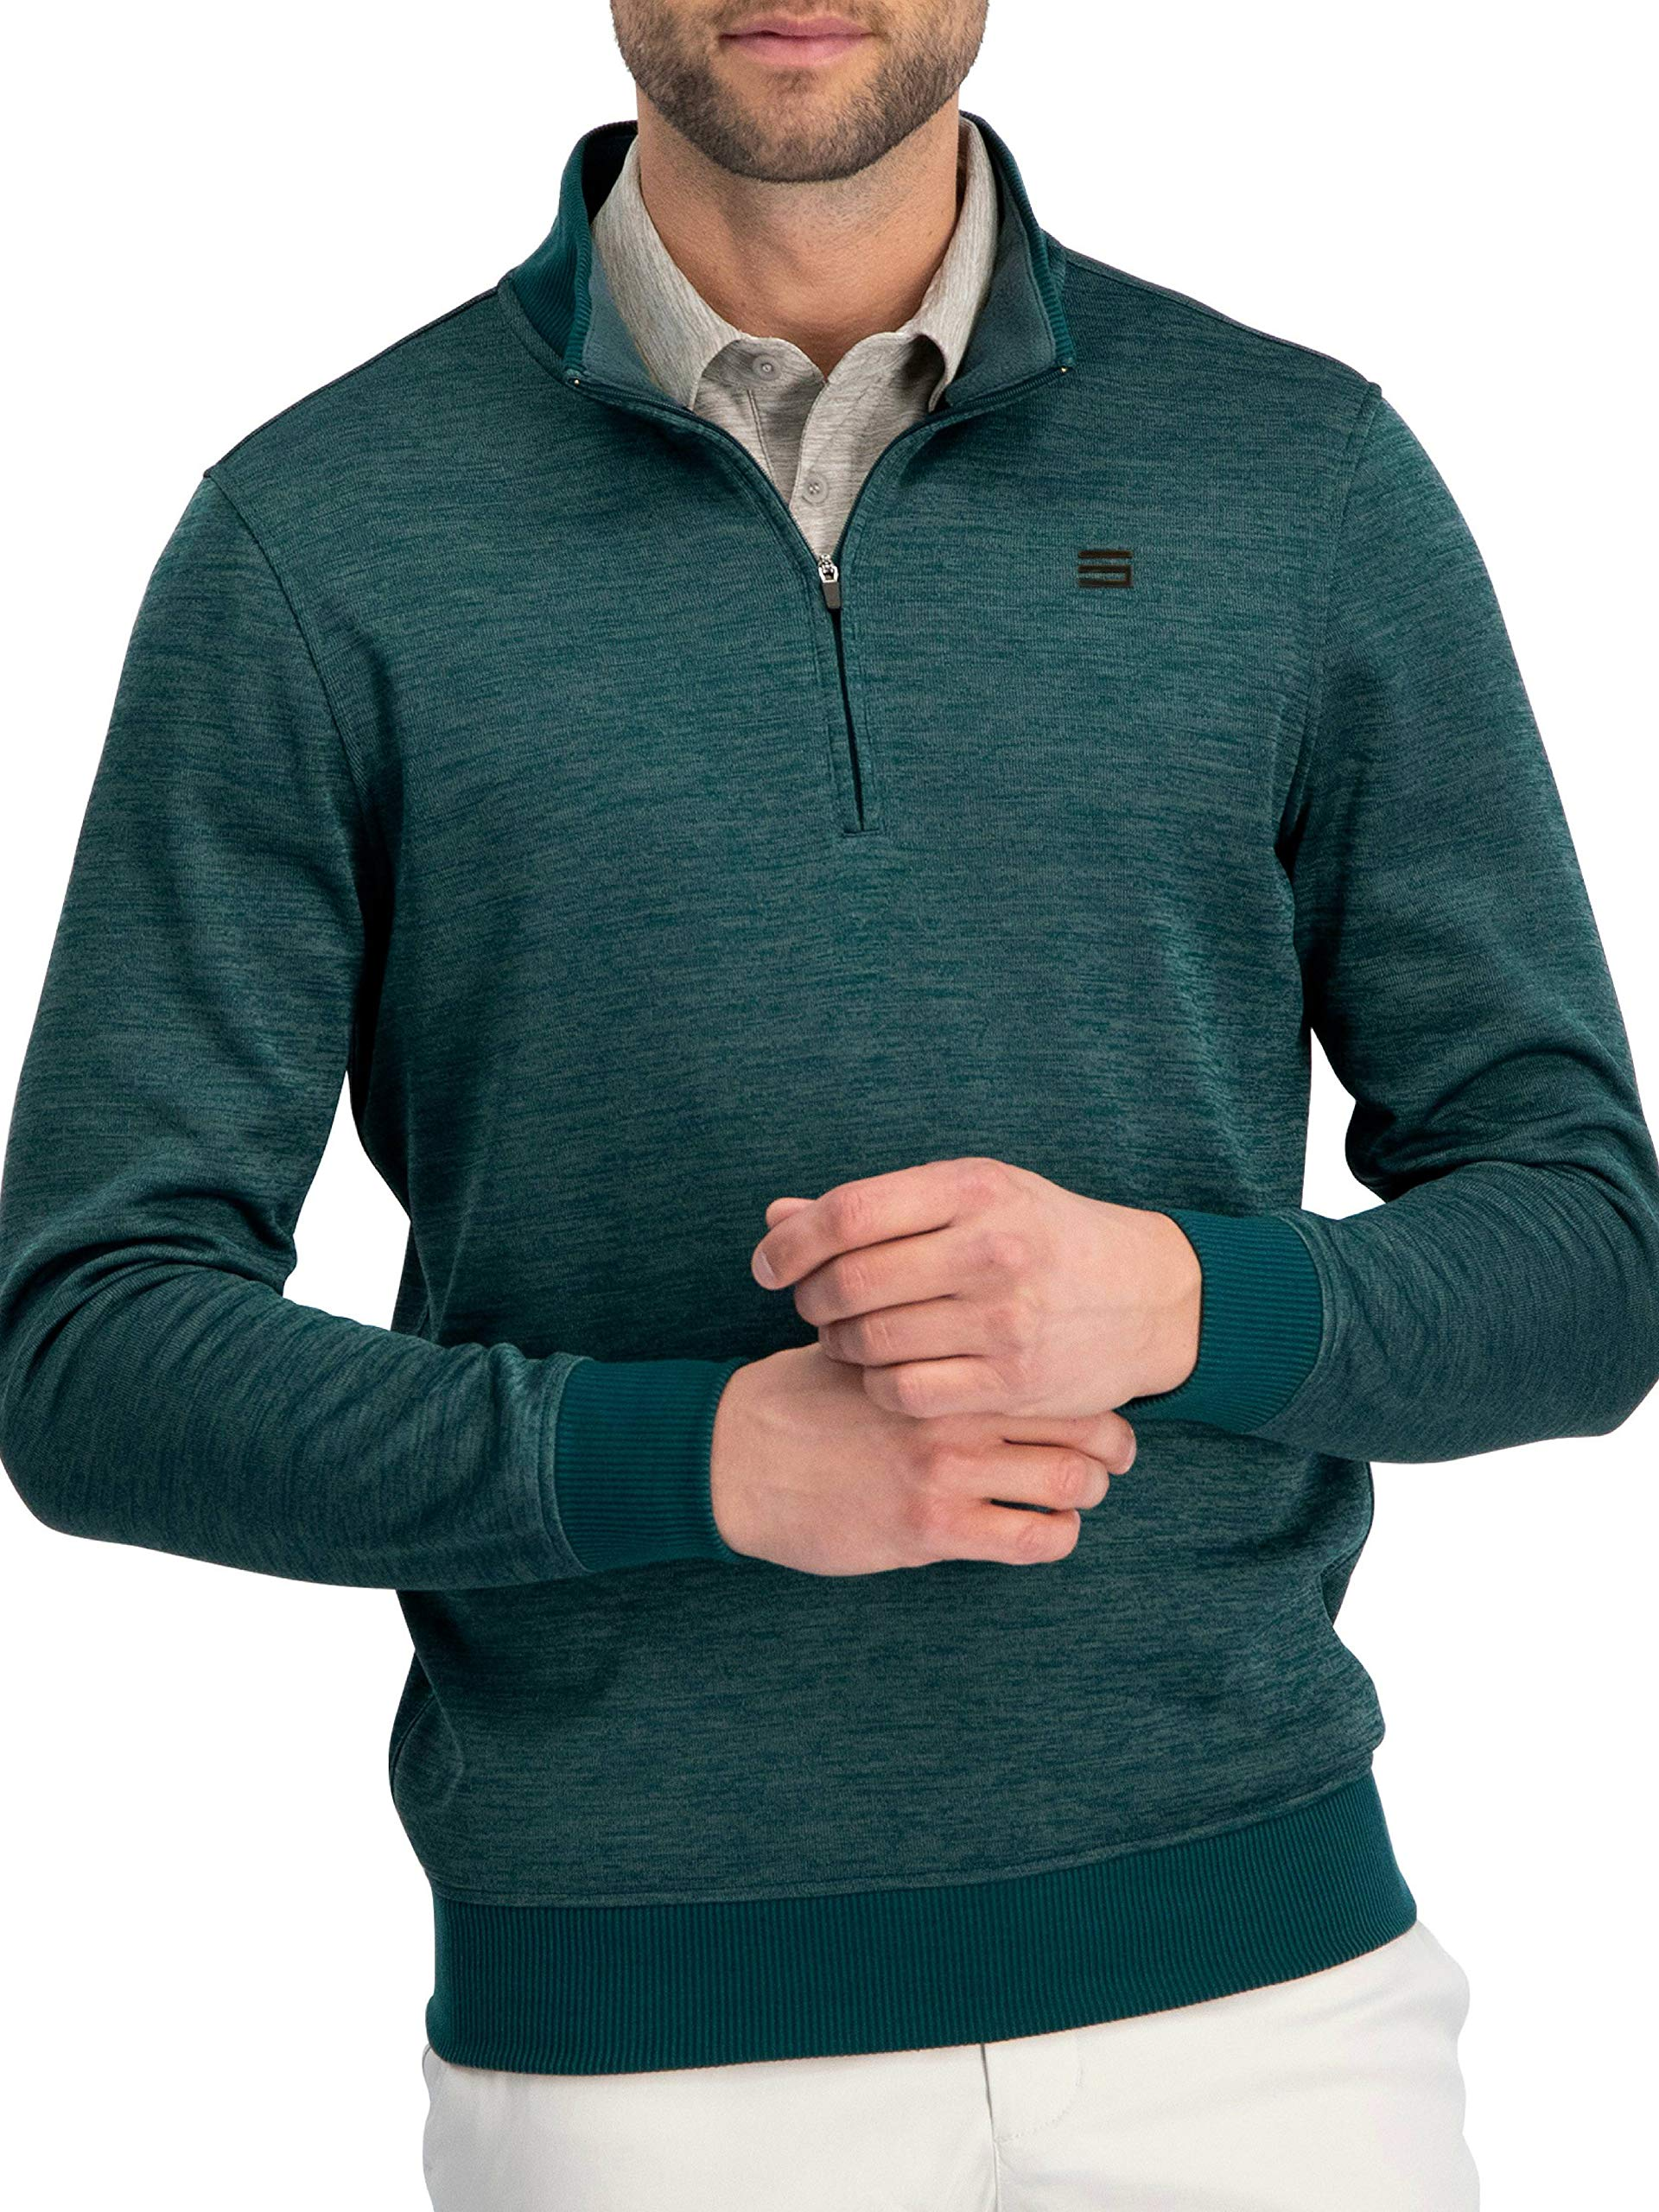 Dry Fit Pullover Sweaters for Men - Quarter Zip Fleece Golf Jacket - Tailored Fit by Three Sixty Six